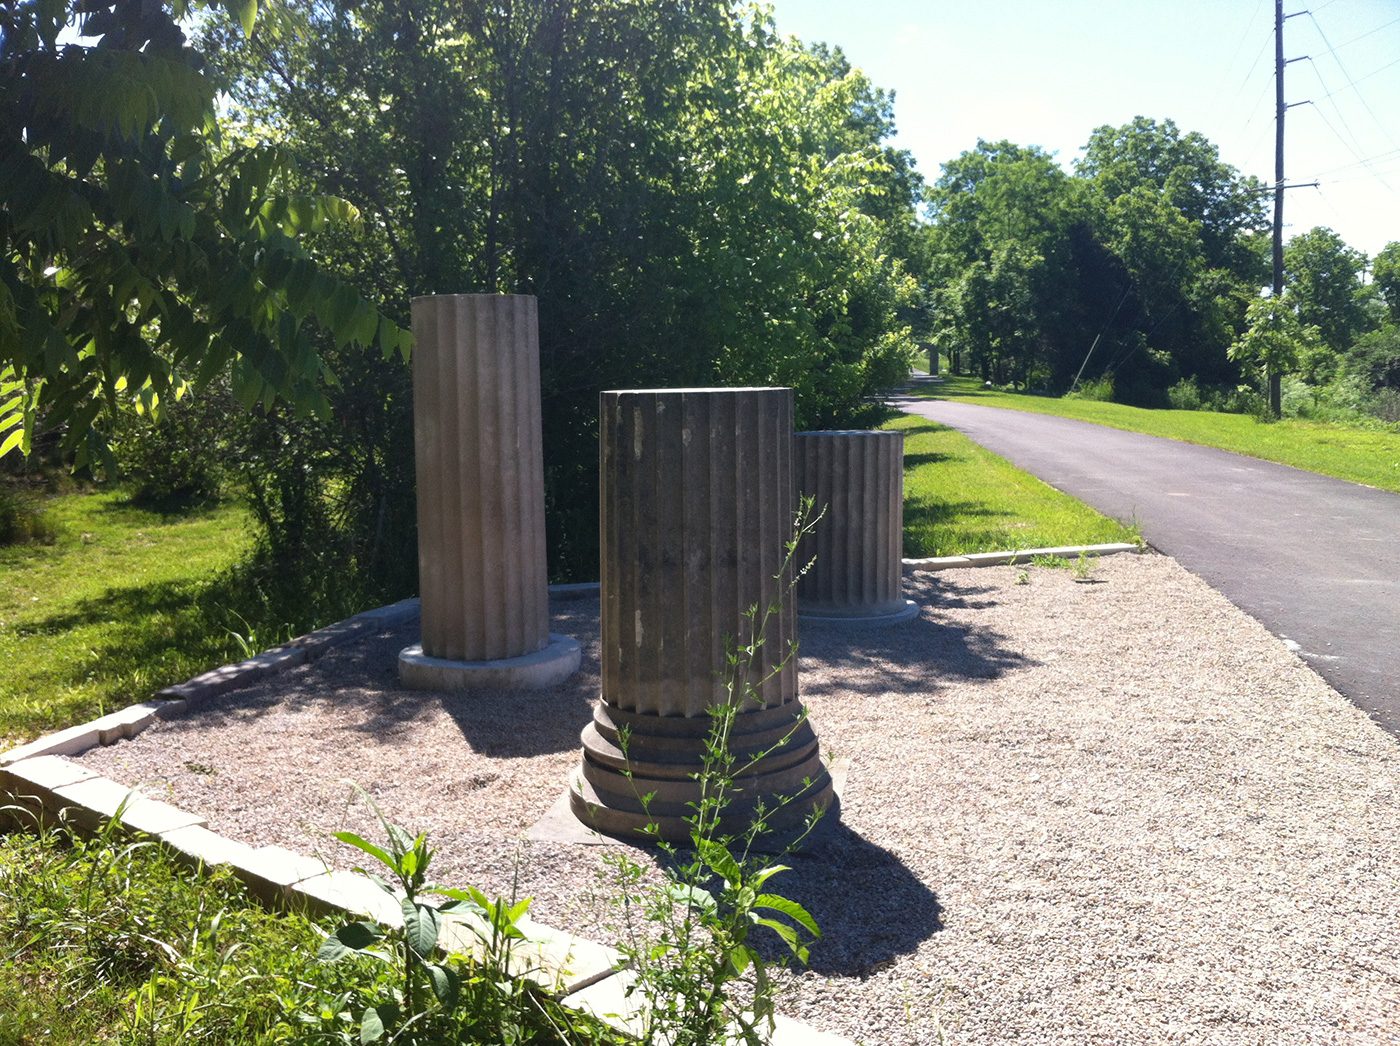 """Ellettsville Heritage Trail, Ellettsville, Indiana, June 2016. The column segment alludes to Ellettsville's important limestone industry and the town's motto, """"Builders of American History""""."""